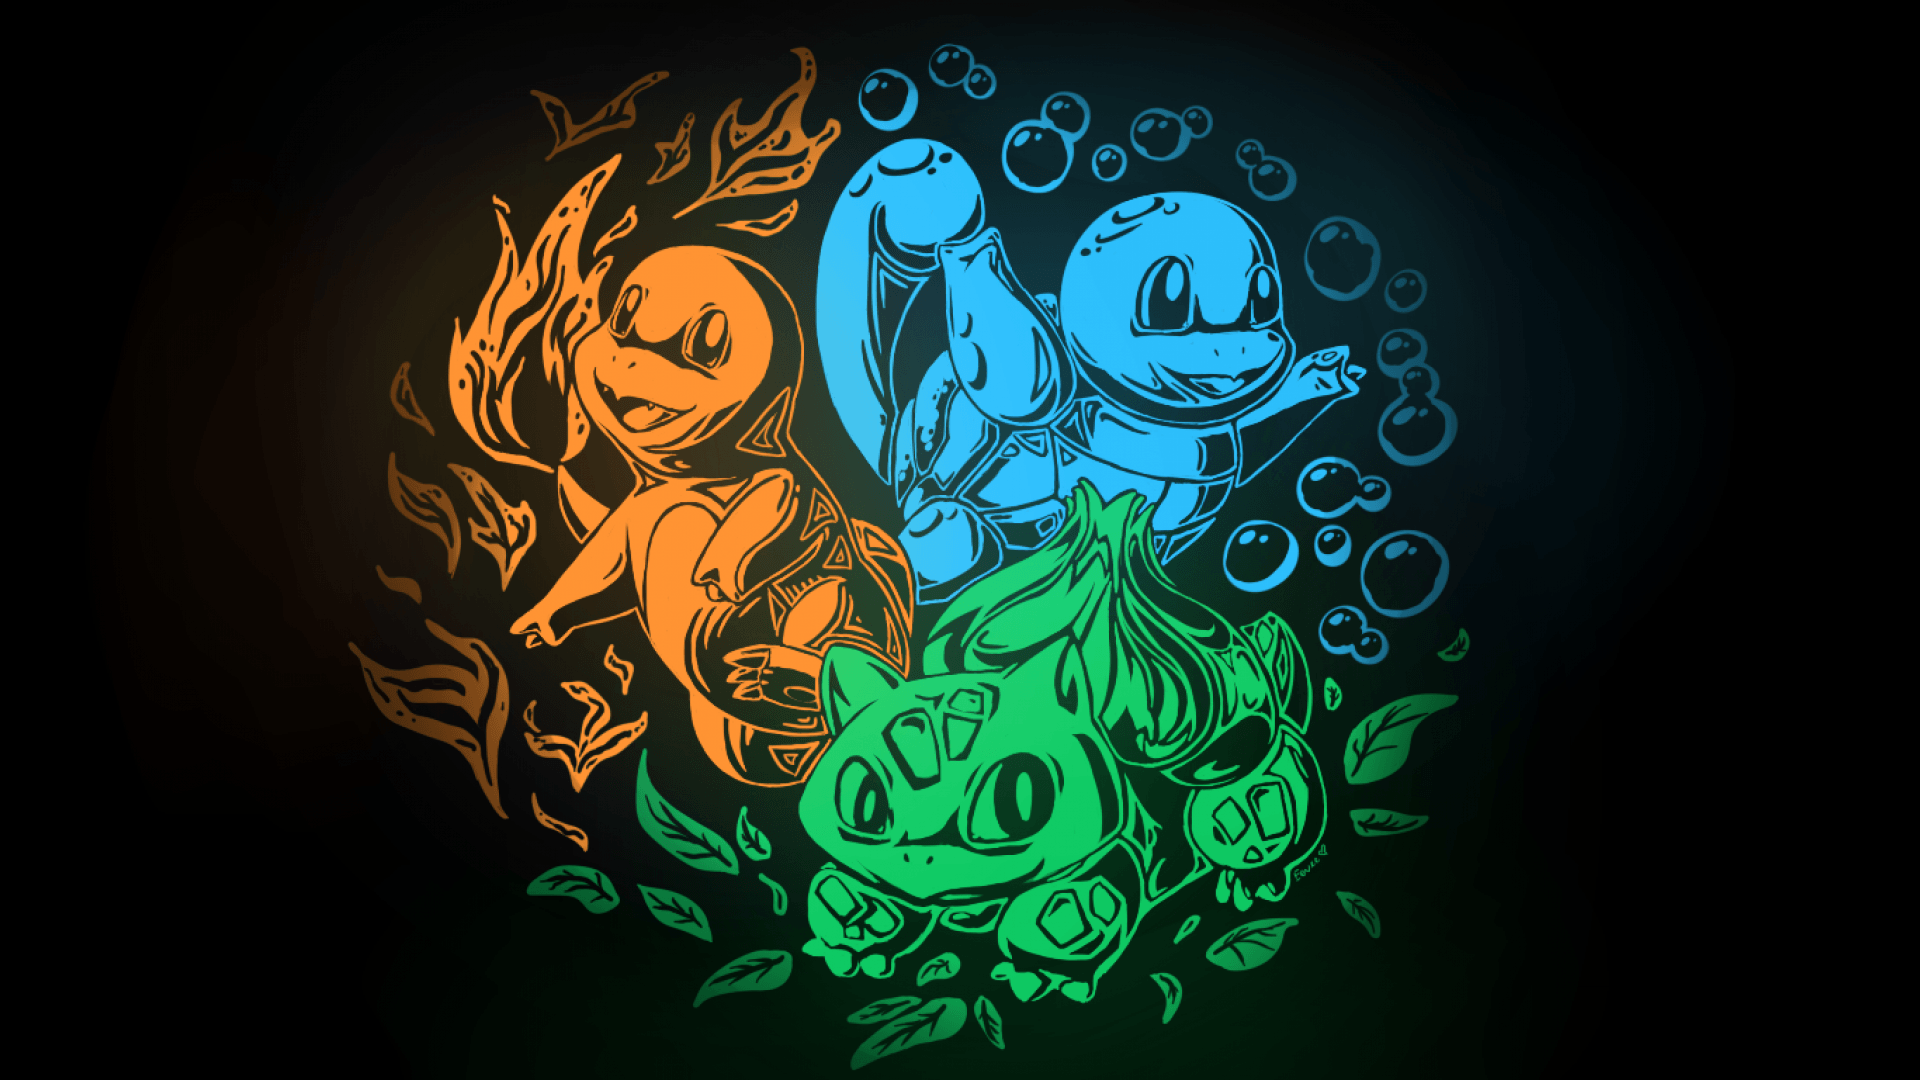 SimplyWallpapers: Bulbasaur Charmander Pokemon Squirtle kanto